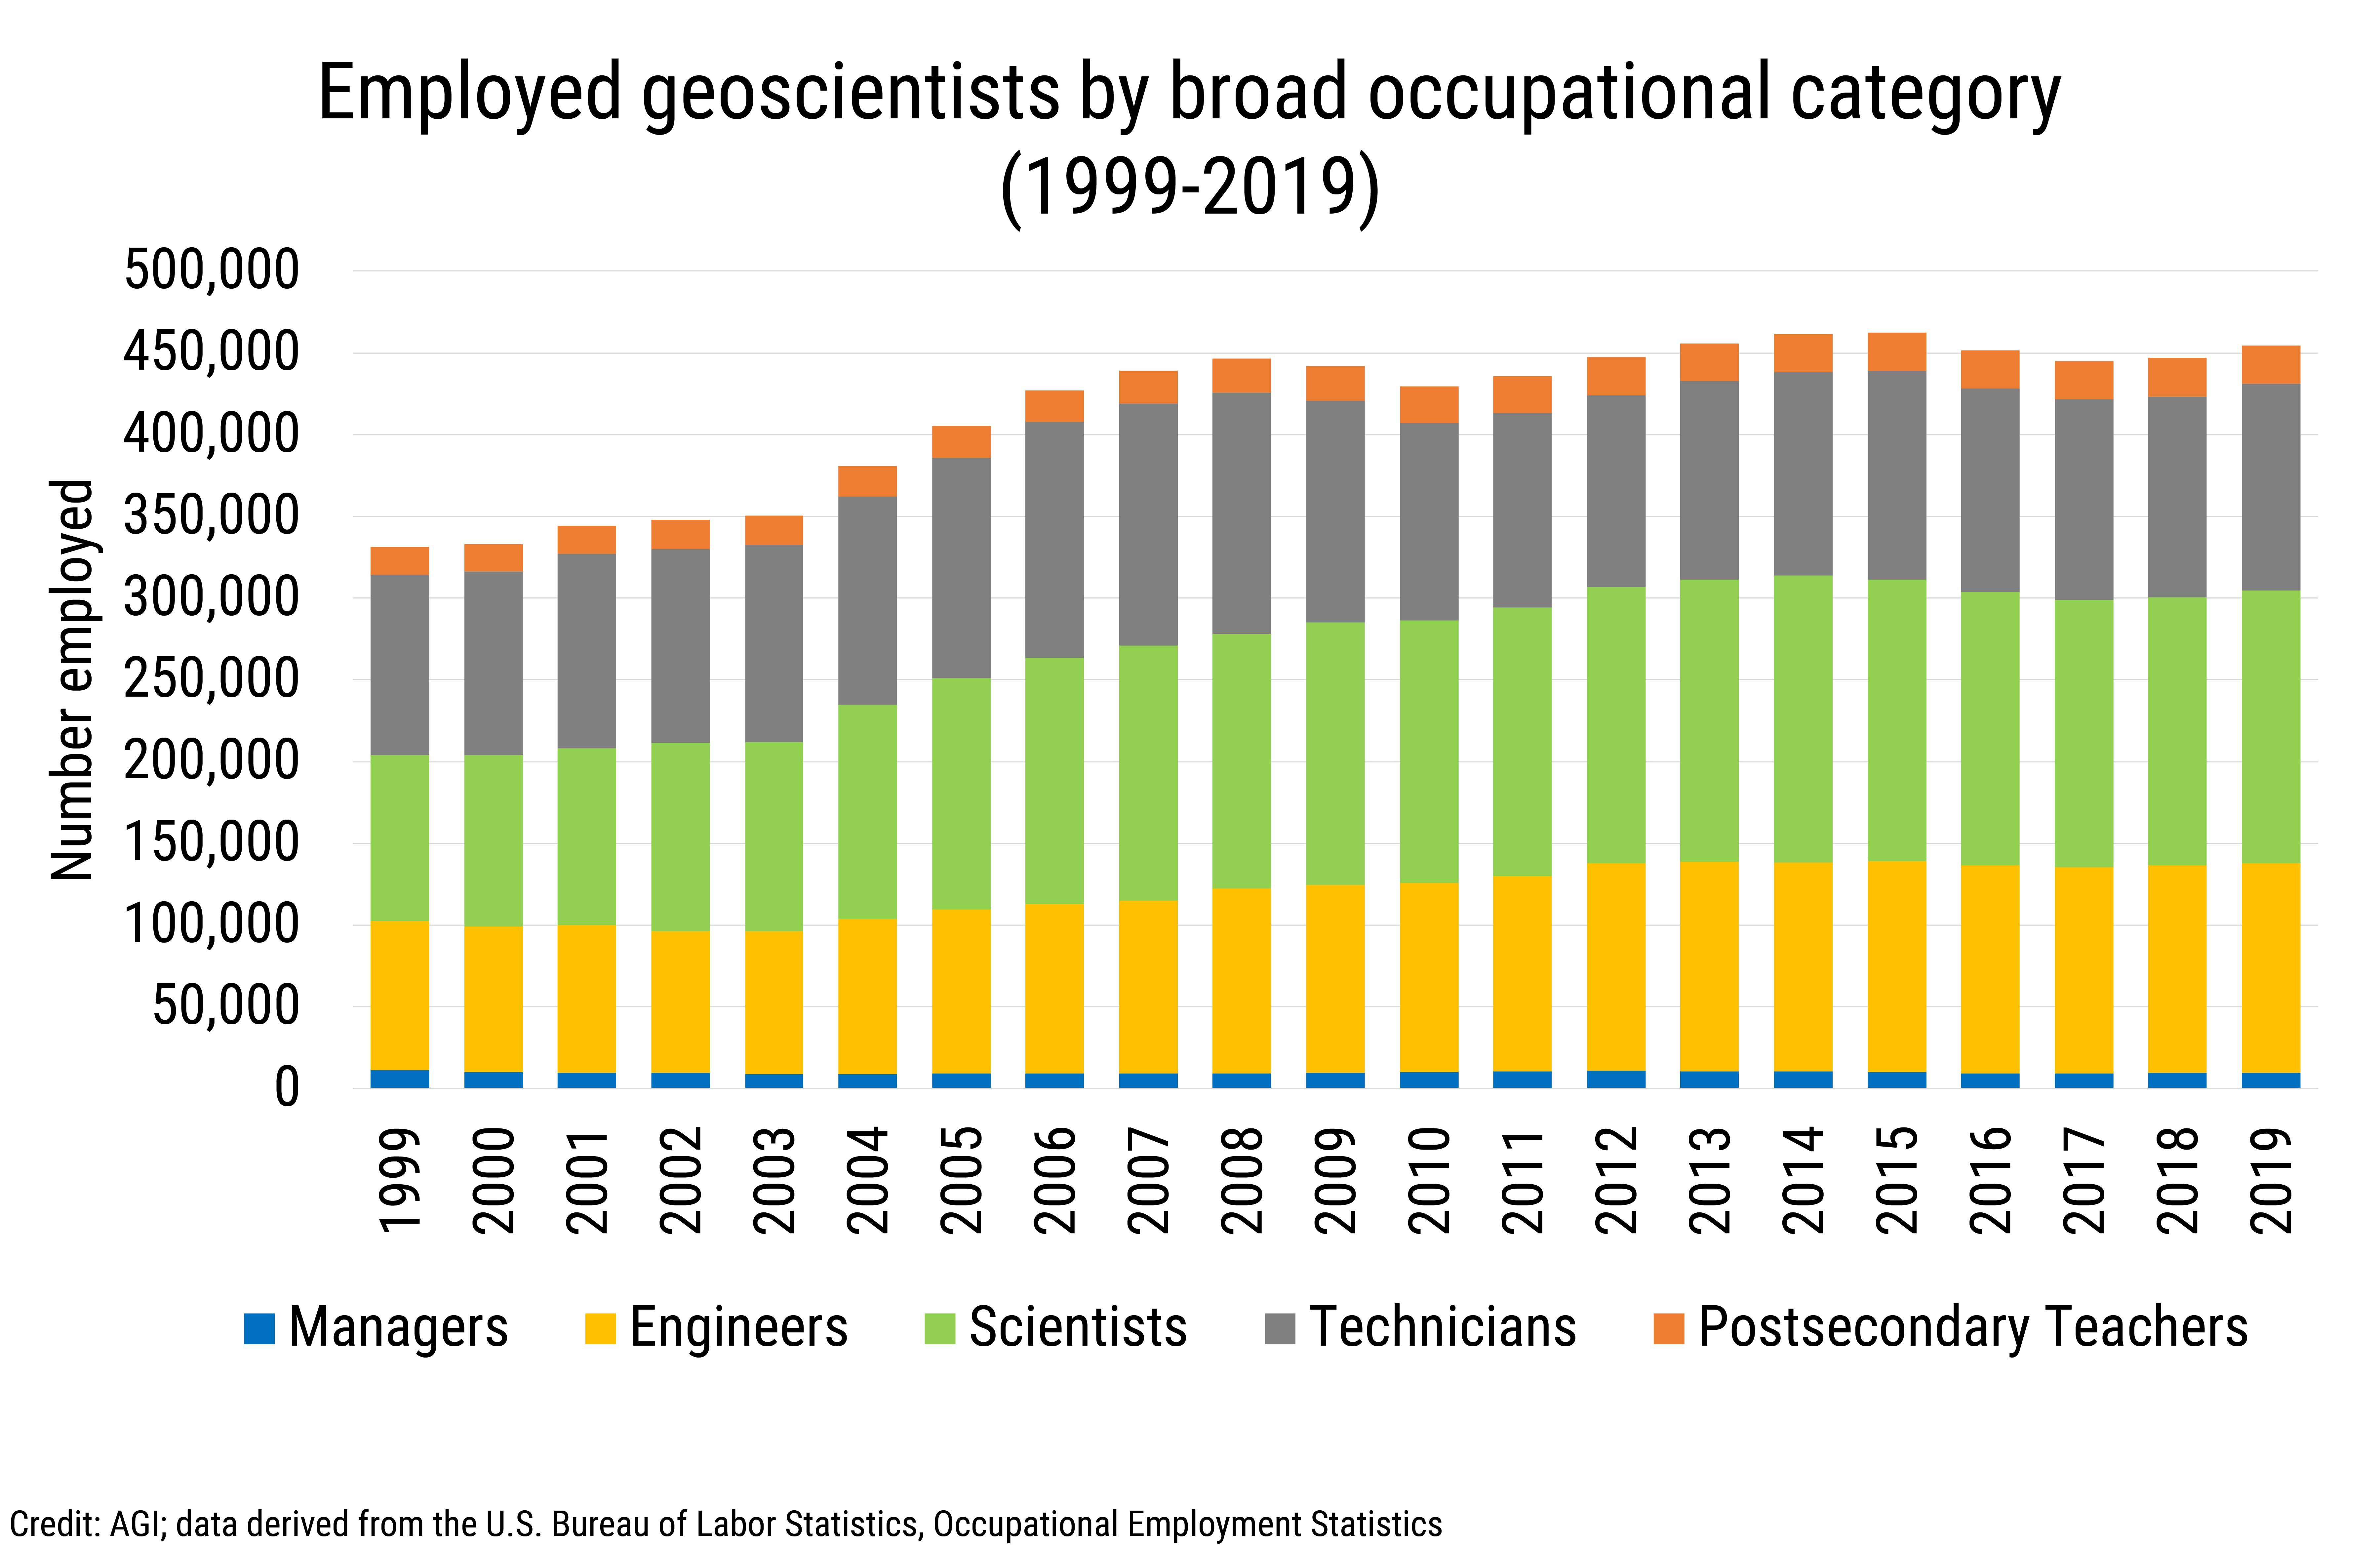 DB_2020-024 chart 01: Employed geoscientists by broad occupational category (1999-2019) (Credit: AGI; data derived from the U.S. Bureau of Labor Statistics, Occupational Employment Statistics)